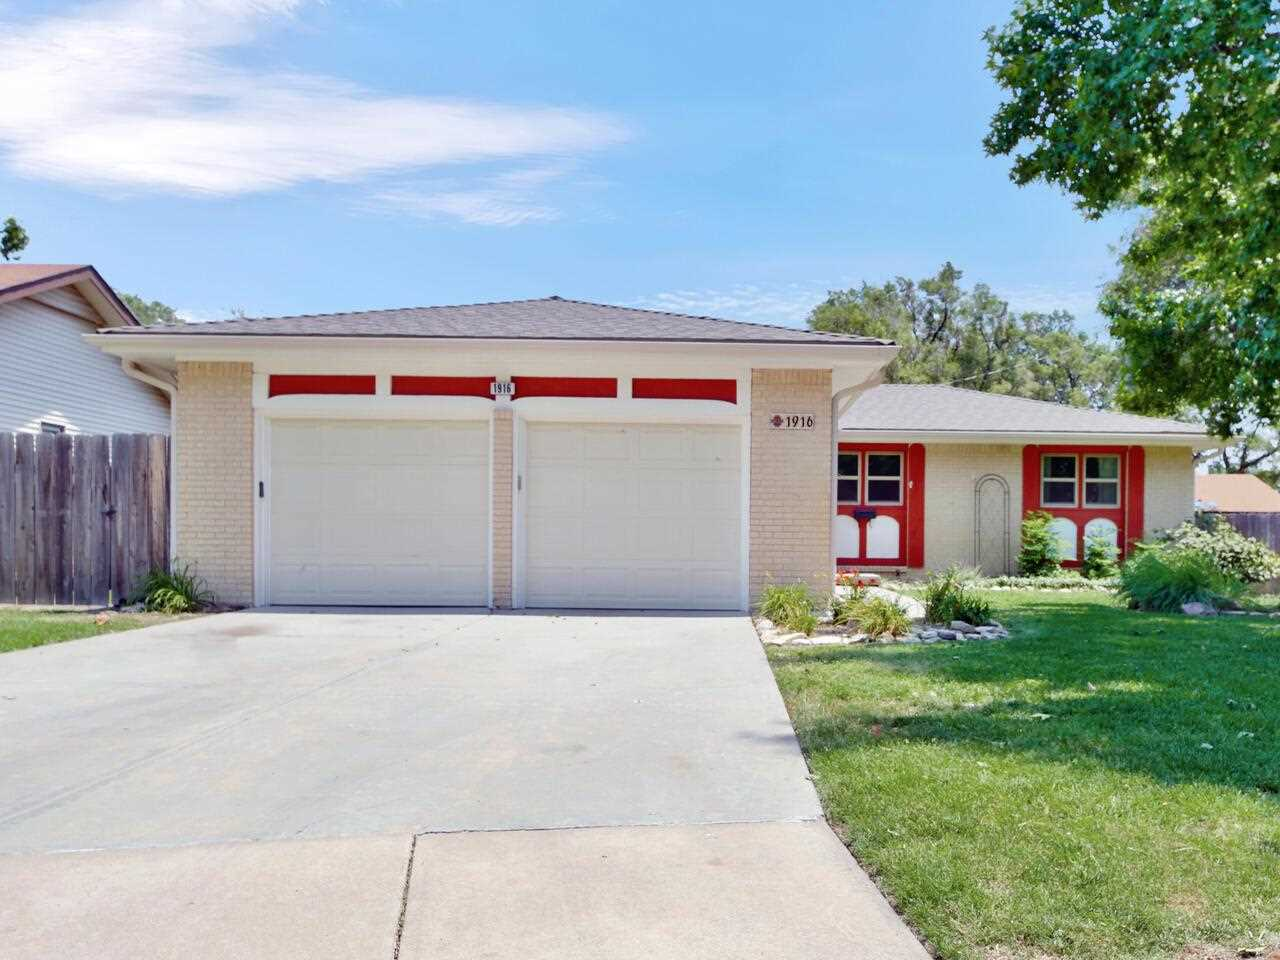 3 bedroom, 1 1/2 bath ranch in the desirable Indian Hills area on a cul-de-sac. The main living area